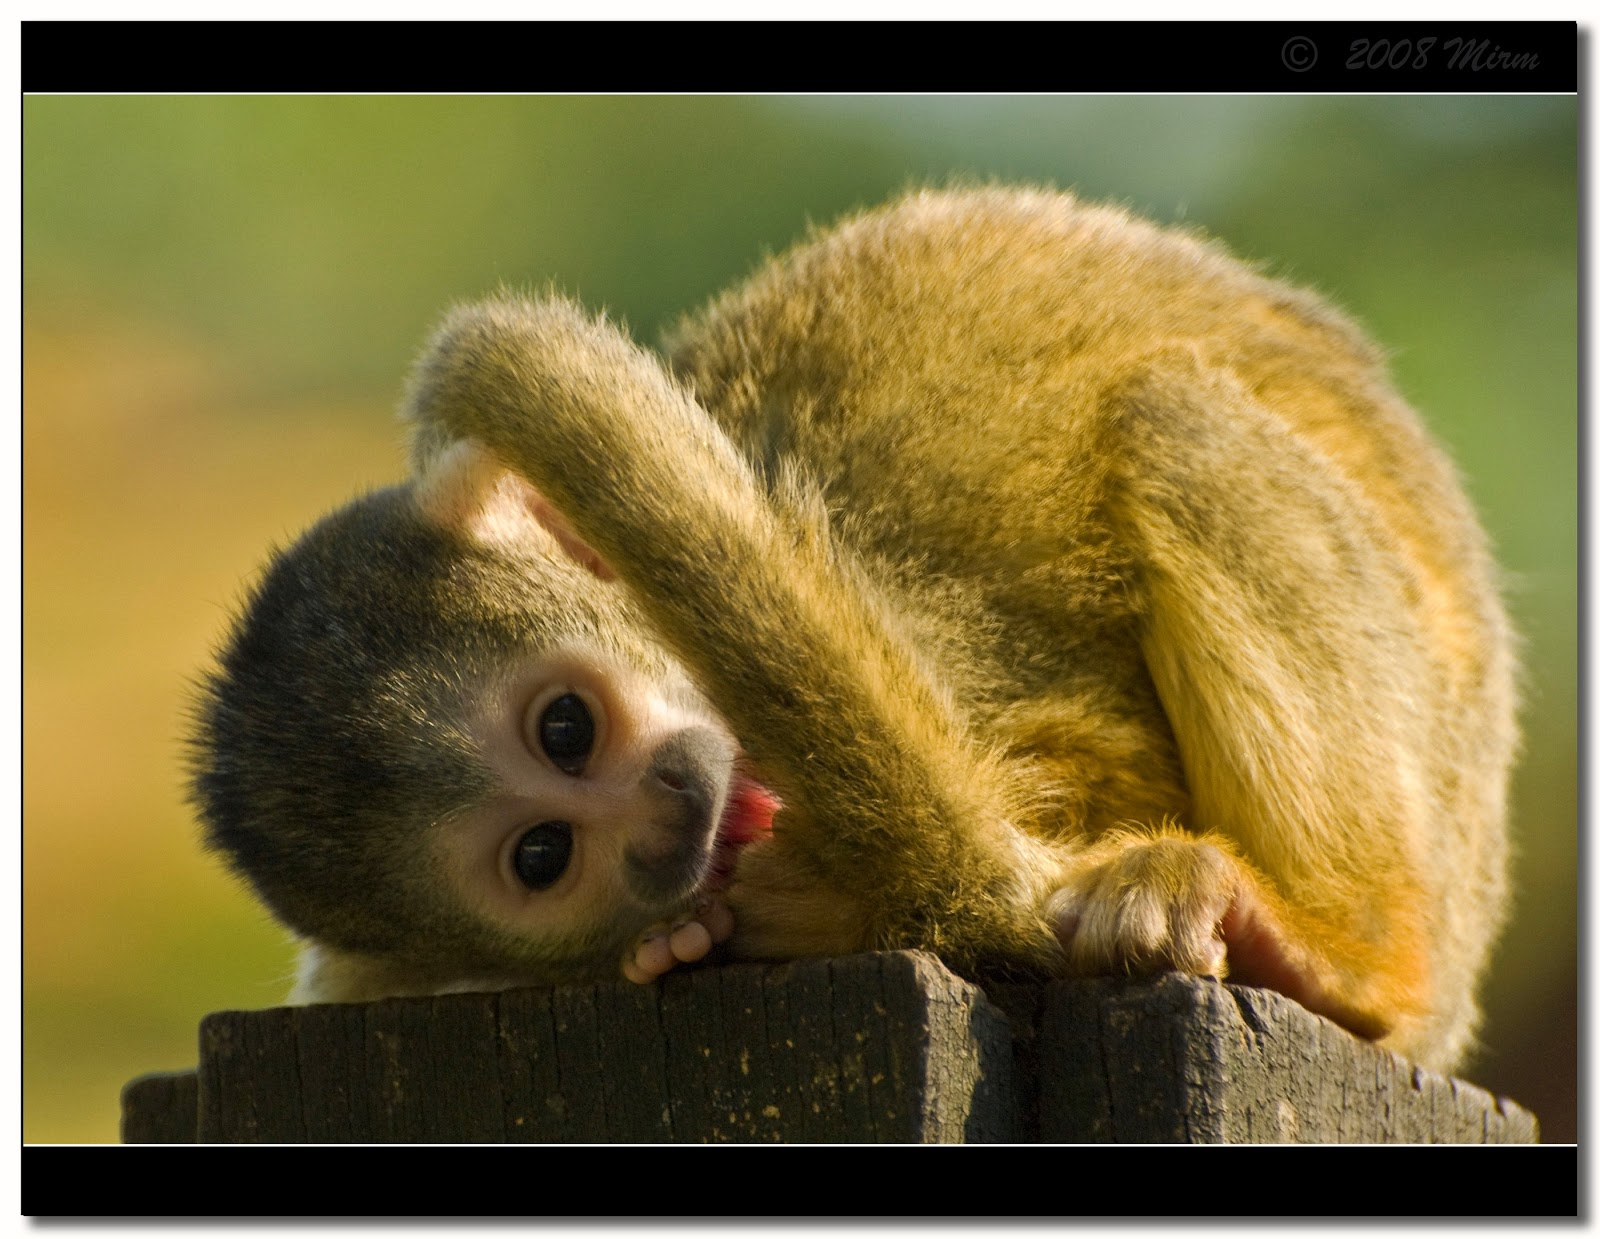 Cute squirrel monkey by **Mirm** from flickr (CC-NC-SA)